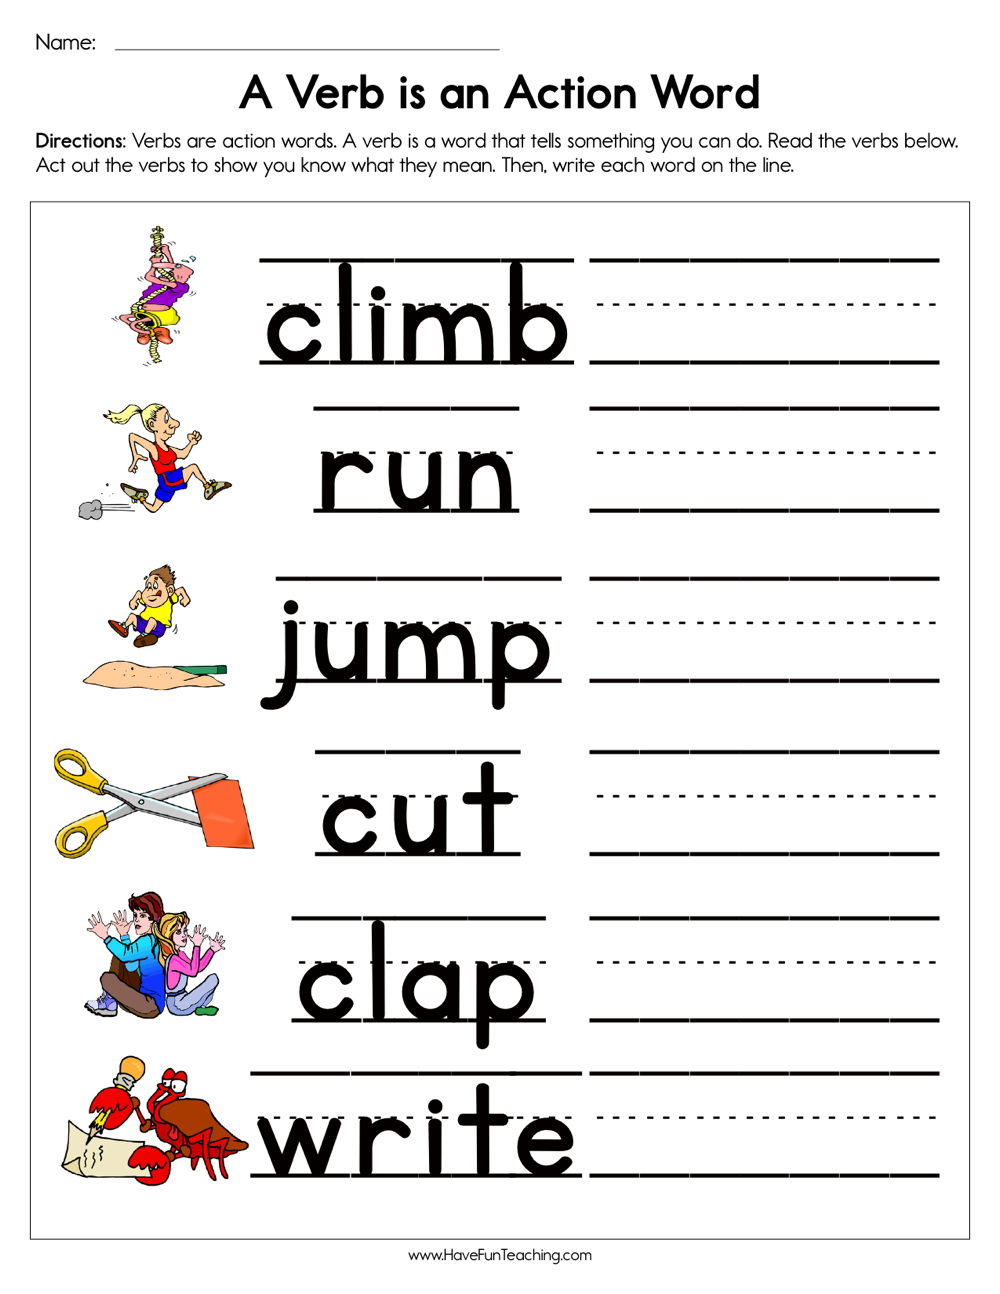 medium resolution of A Verb is an Action Word Worksheet • Have Fun Teaching